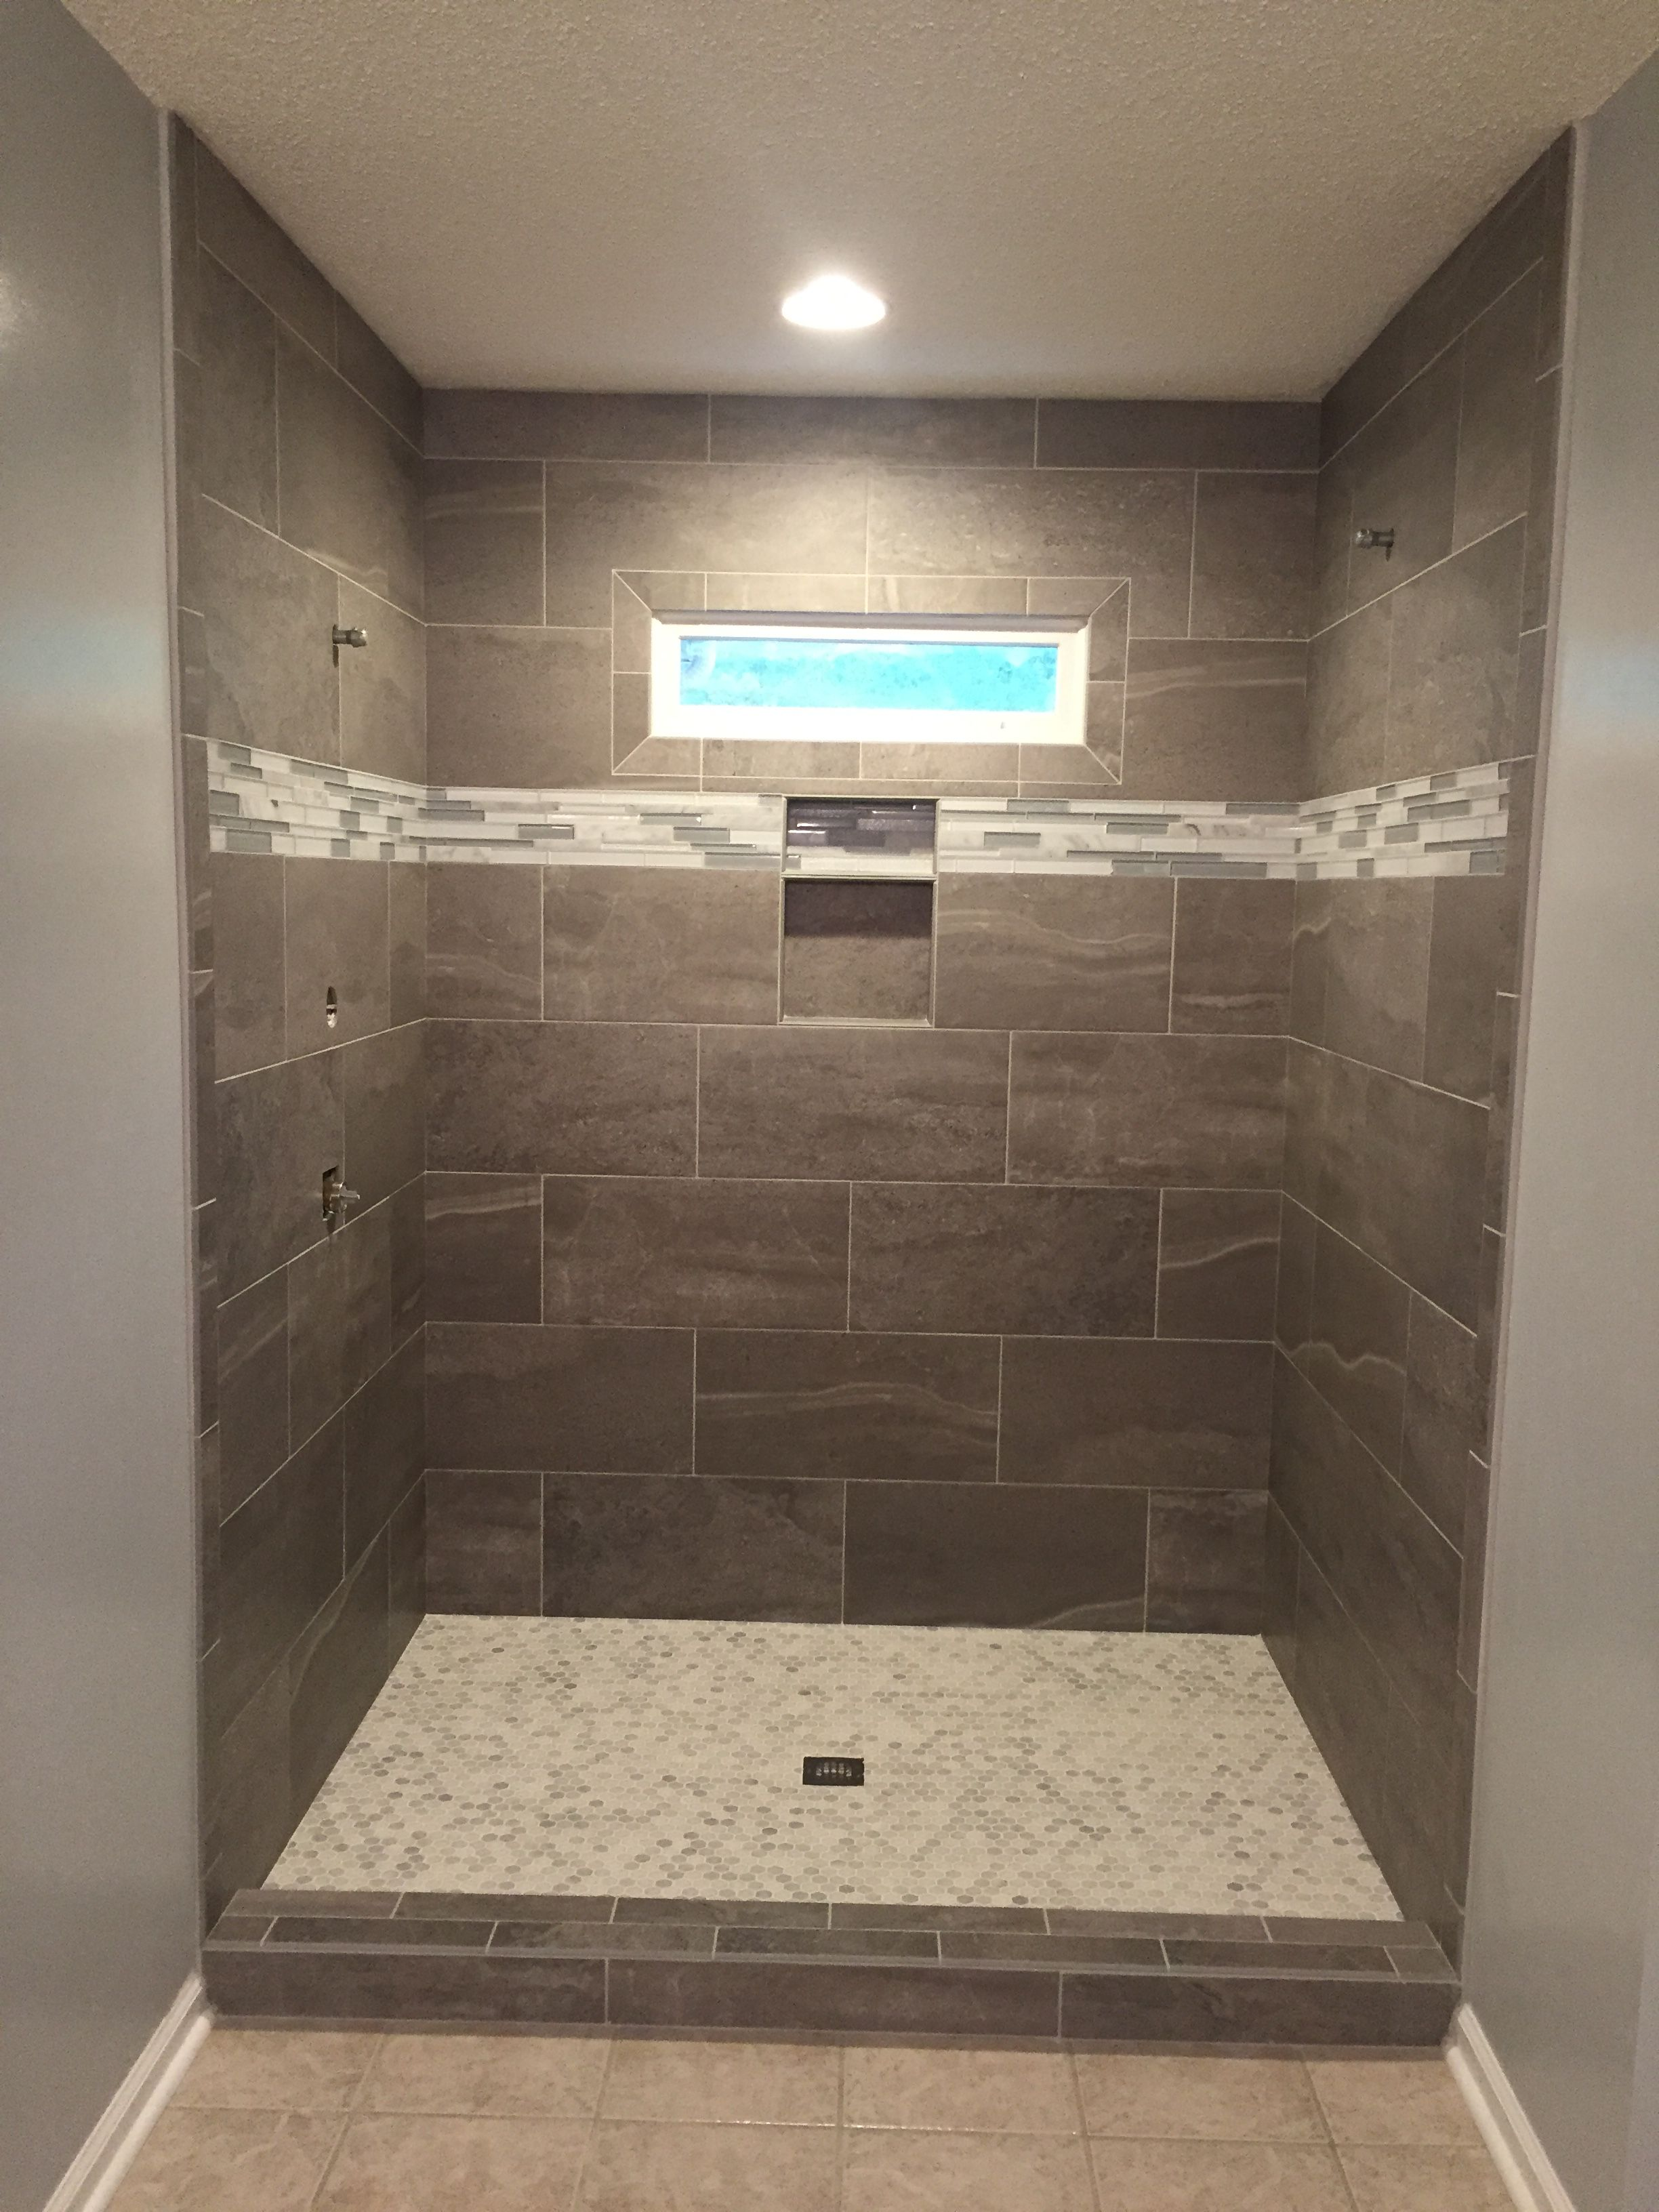 Skyros Gray Tile With Glass Accent Strip And Carrara